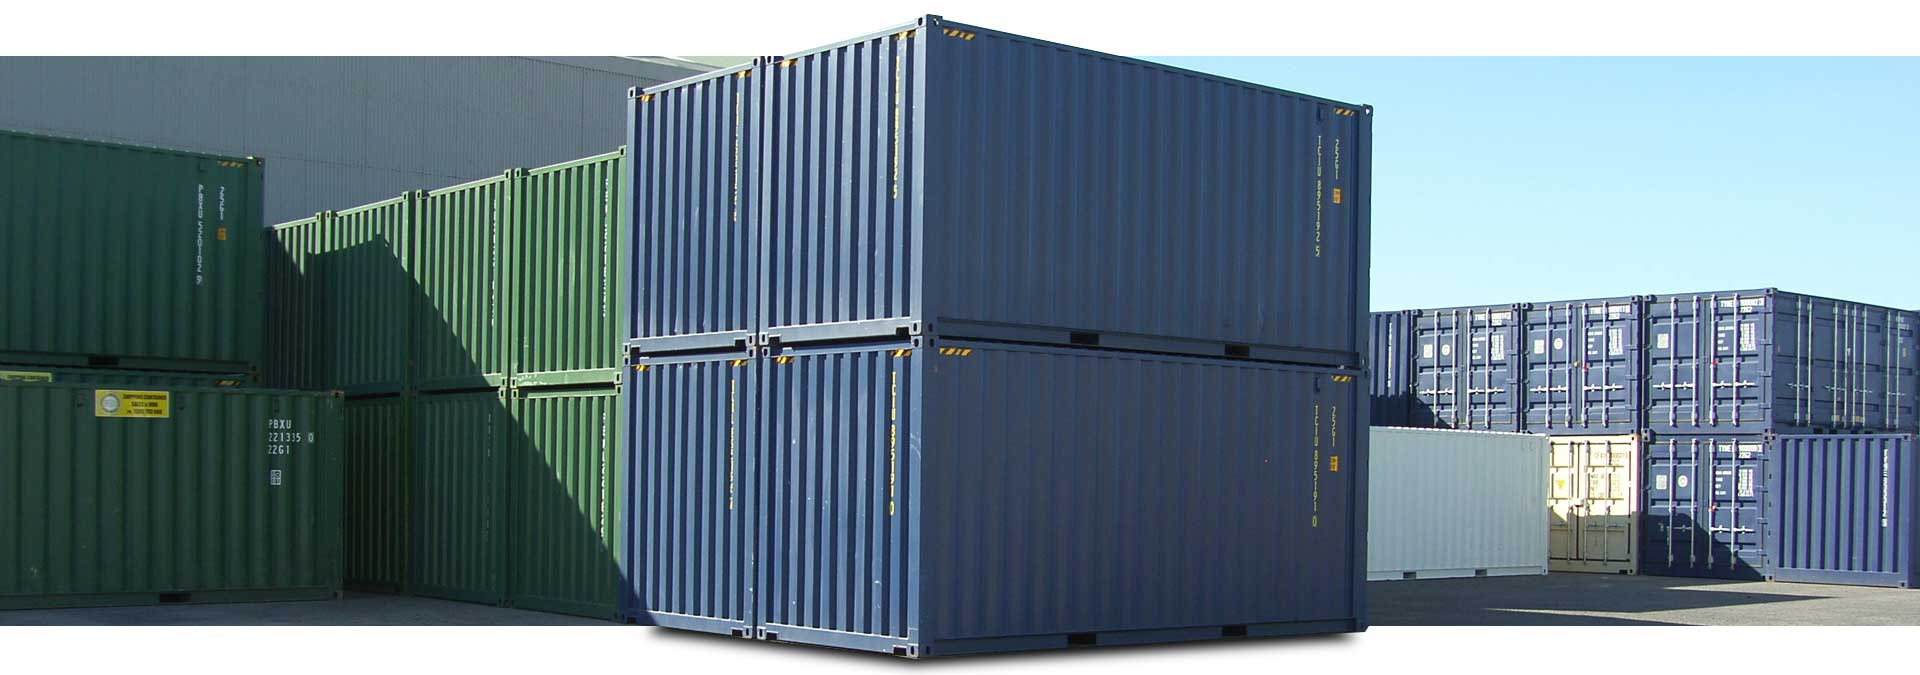 port-shipping-containers-divider